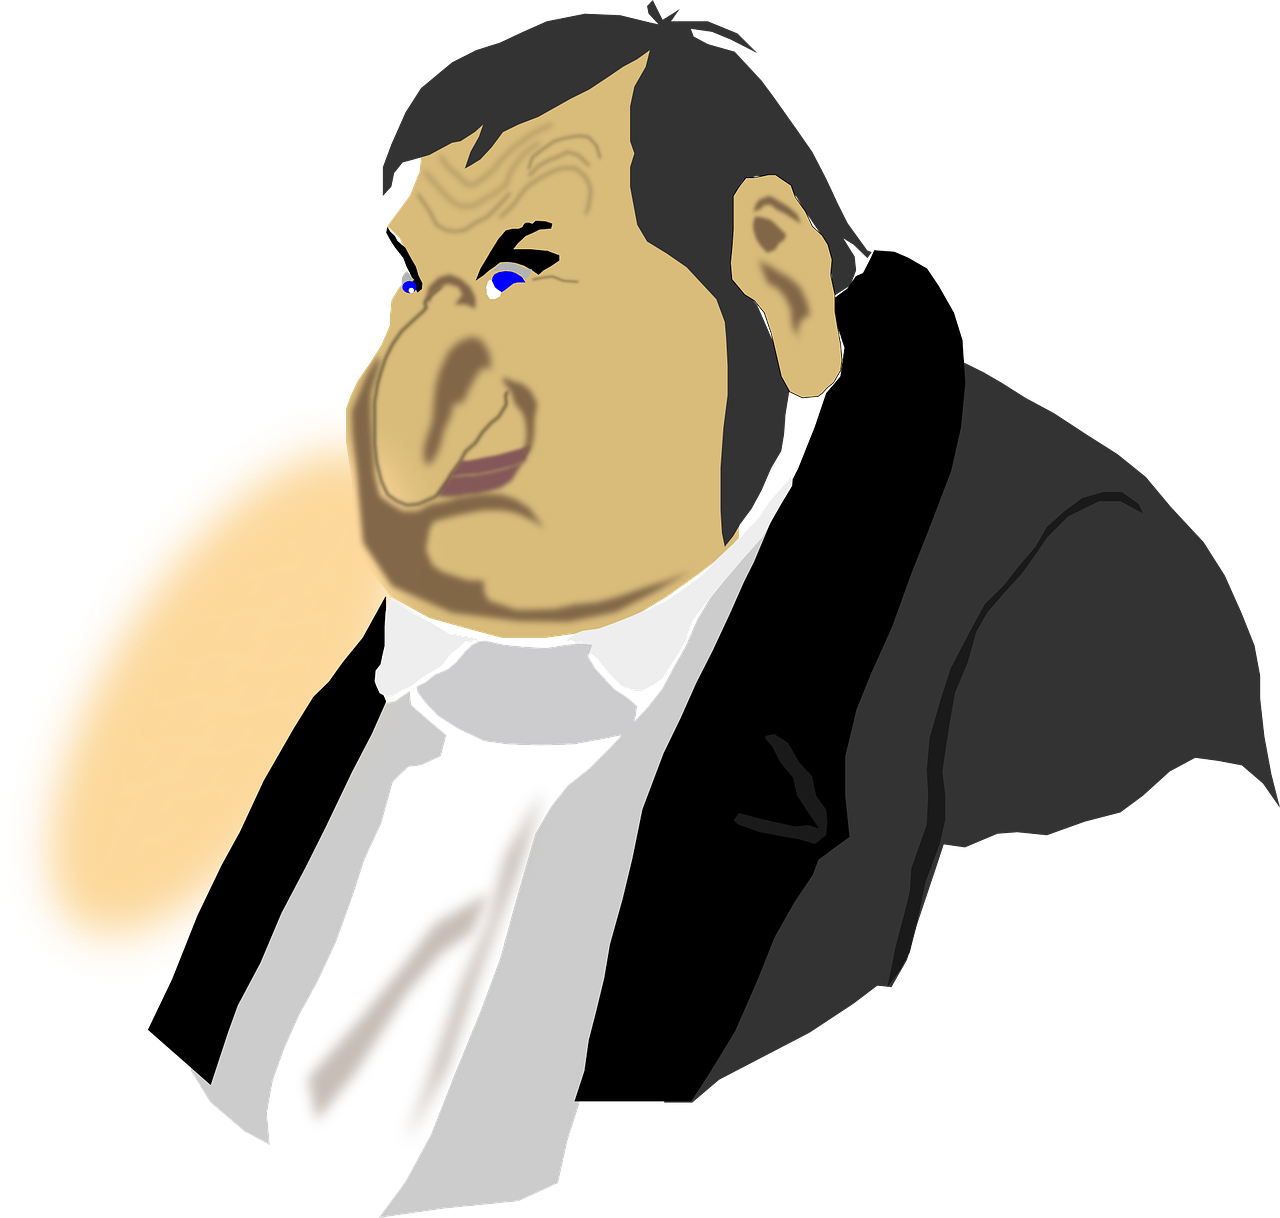 Man Nose Person Big Nose Grimly PNG.